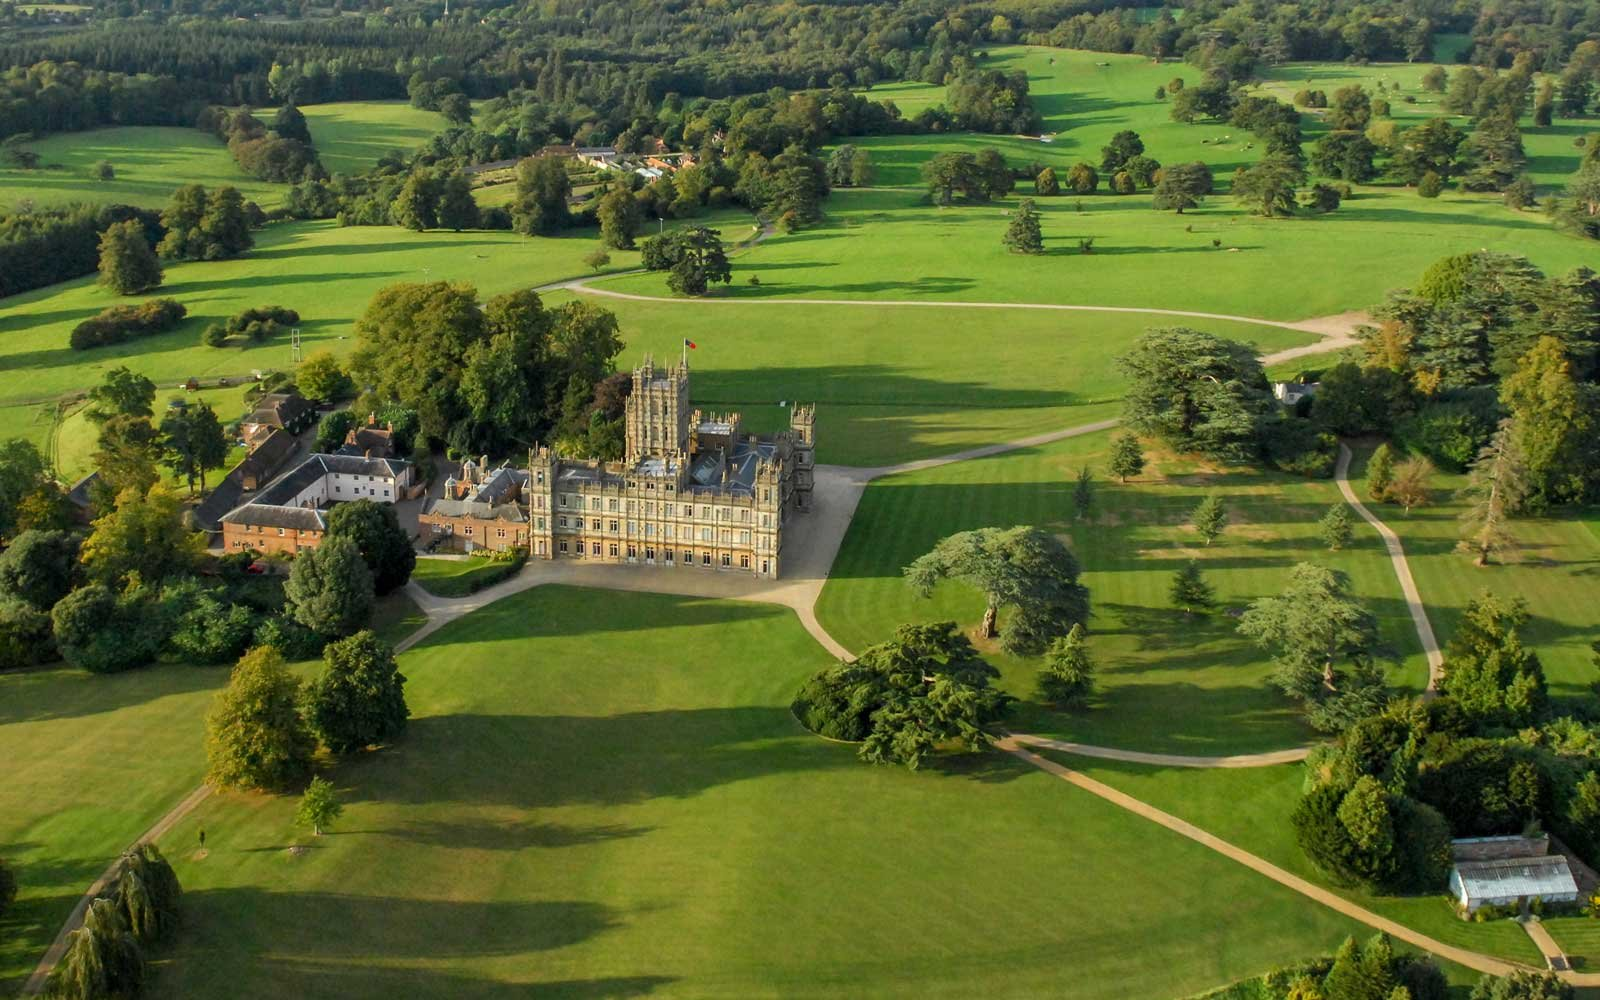 Aerial photograph of Highclere Castle, the offical residence of the Earl of Carnarvon on April 07, 2015.